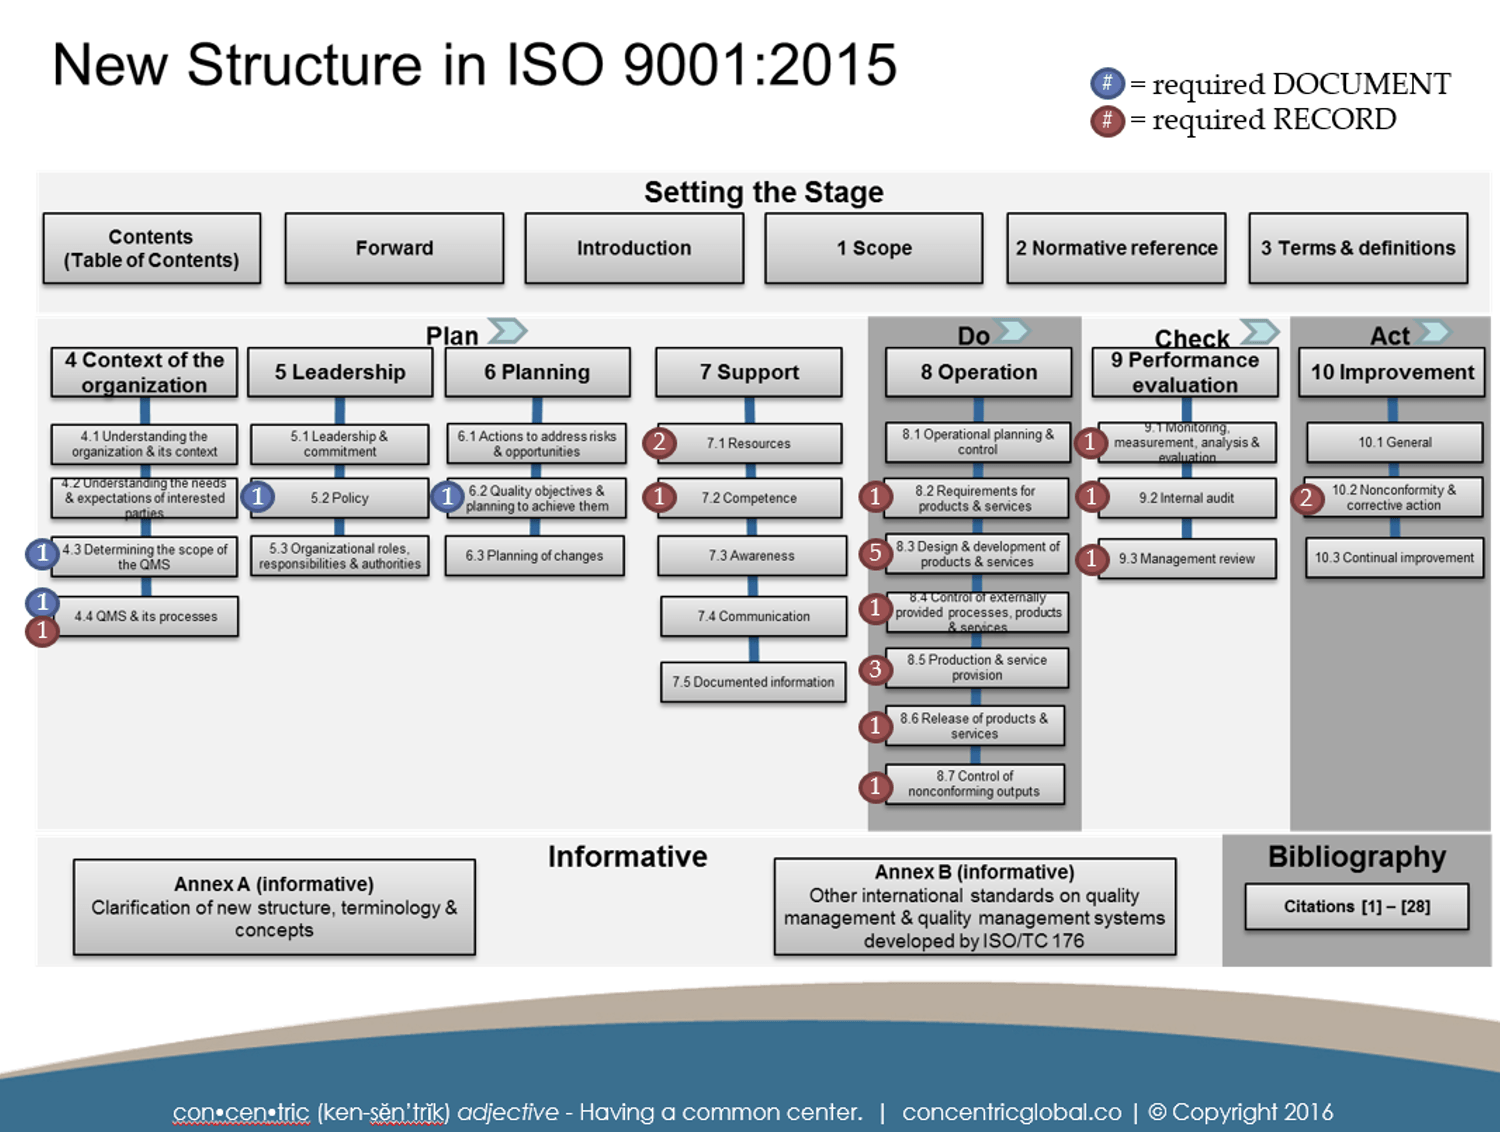 data model diagram tool free labled of the eye iso 9001:2015 documentation requirements — concentric global